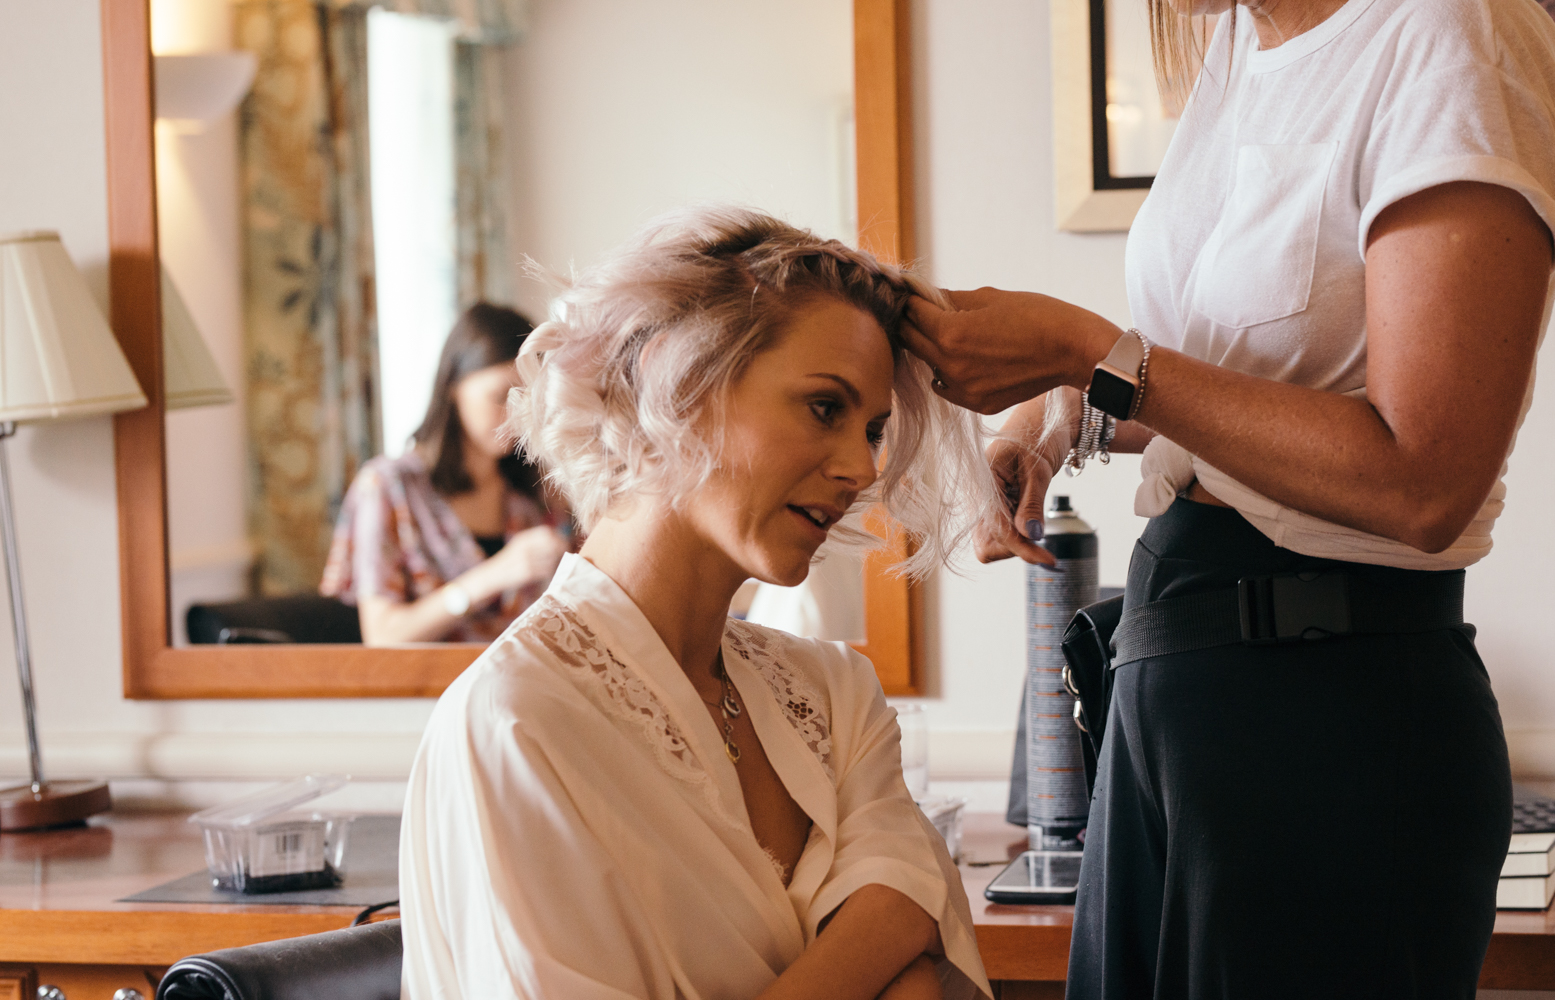 A bridesmaid having her hair done during morning preparations